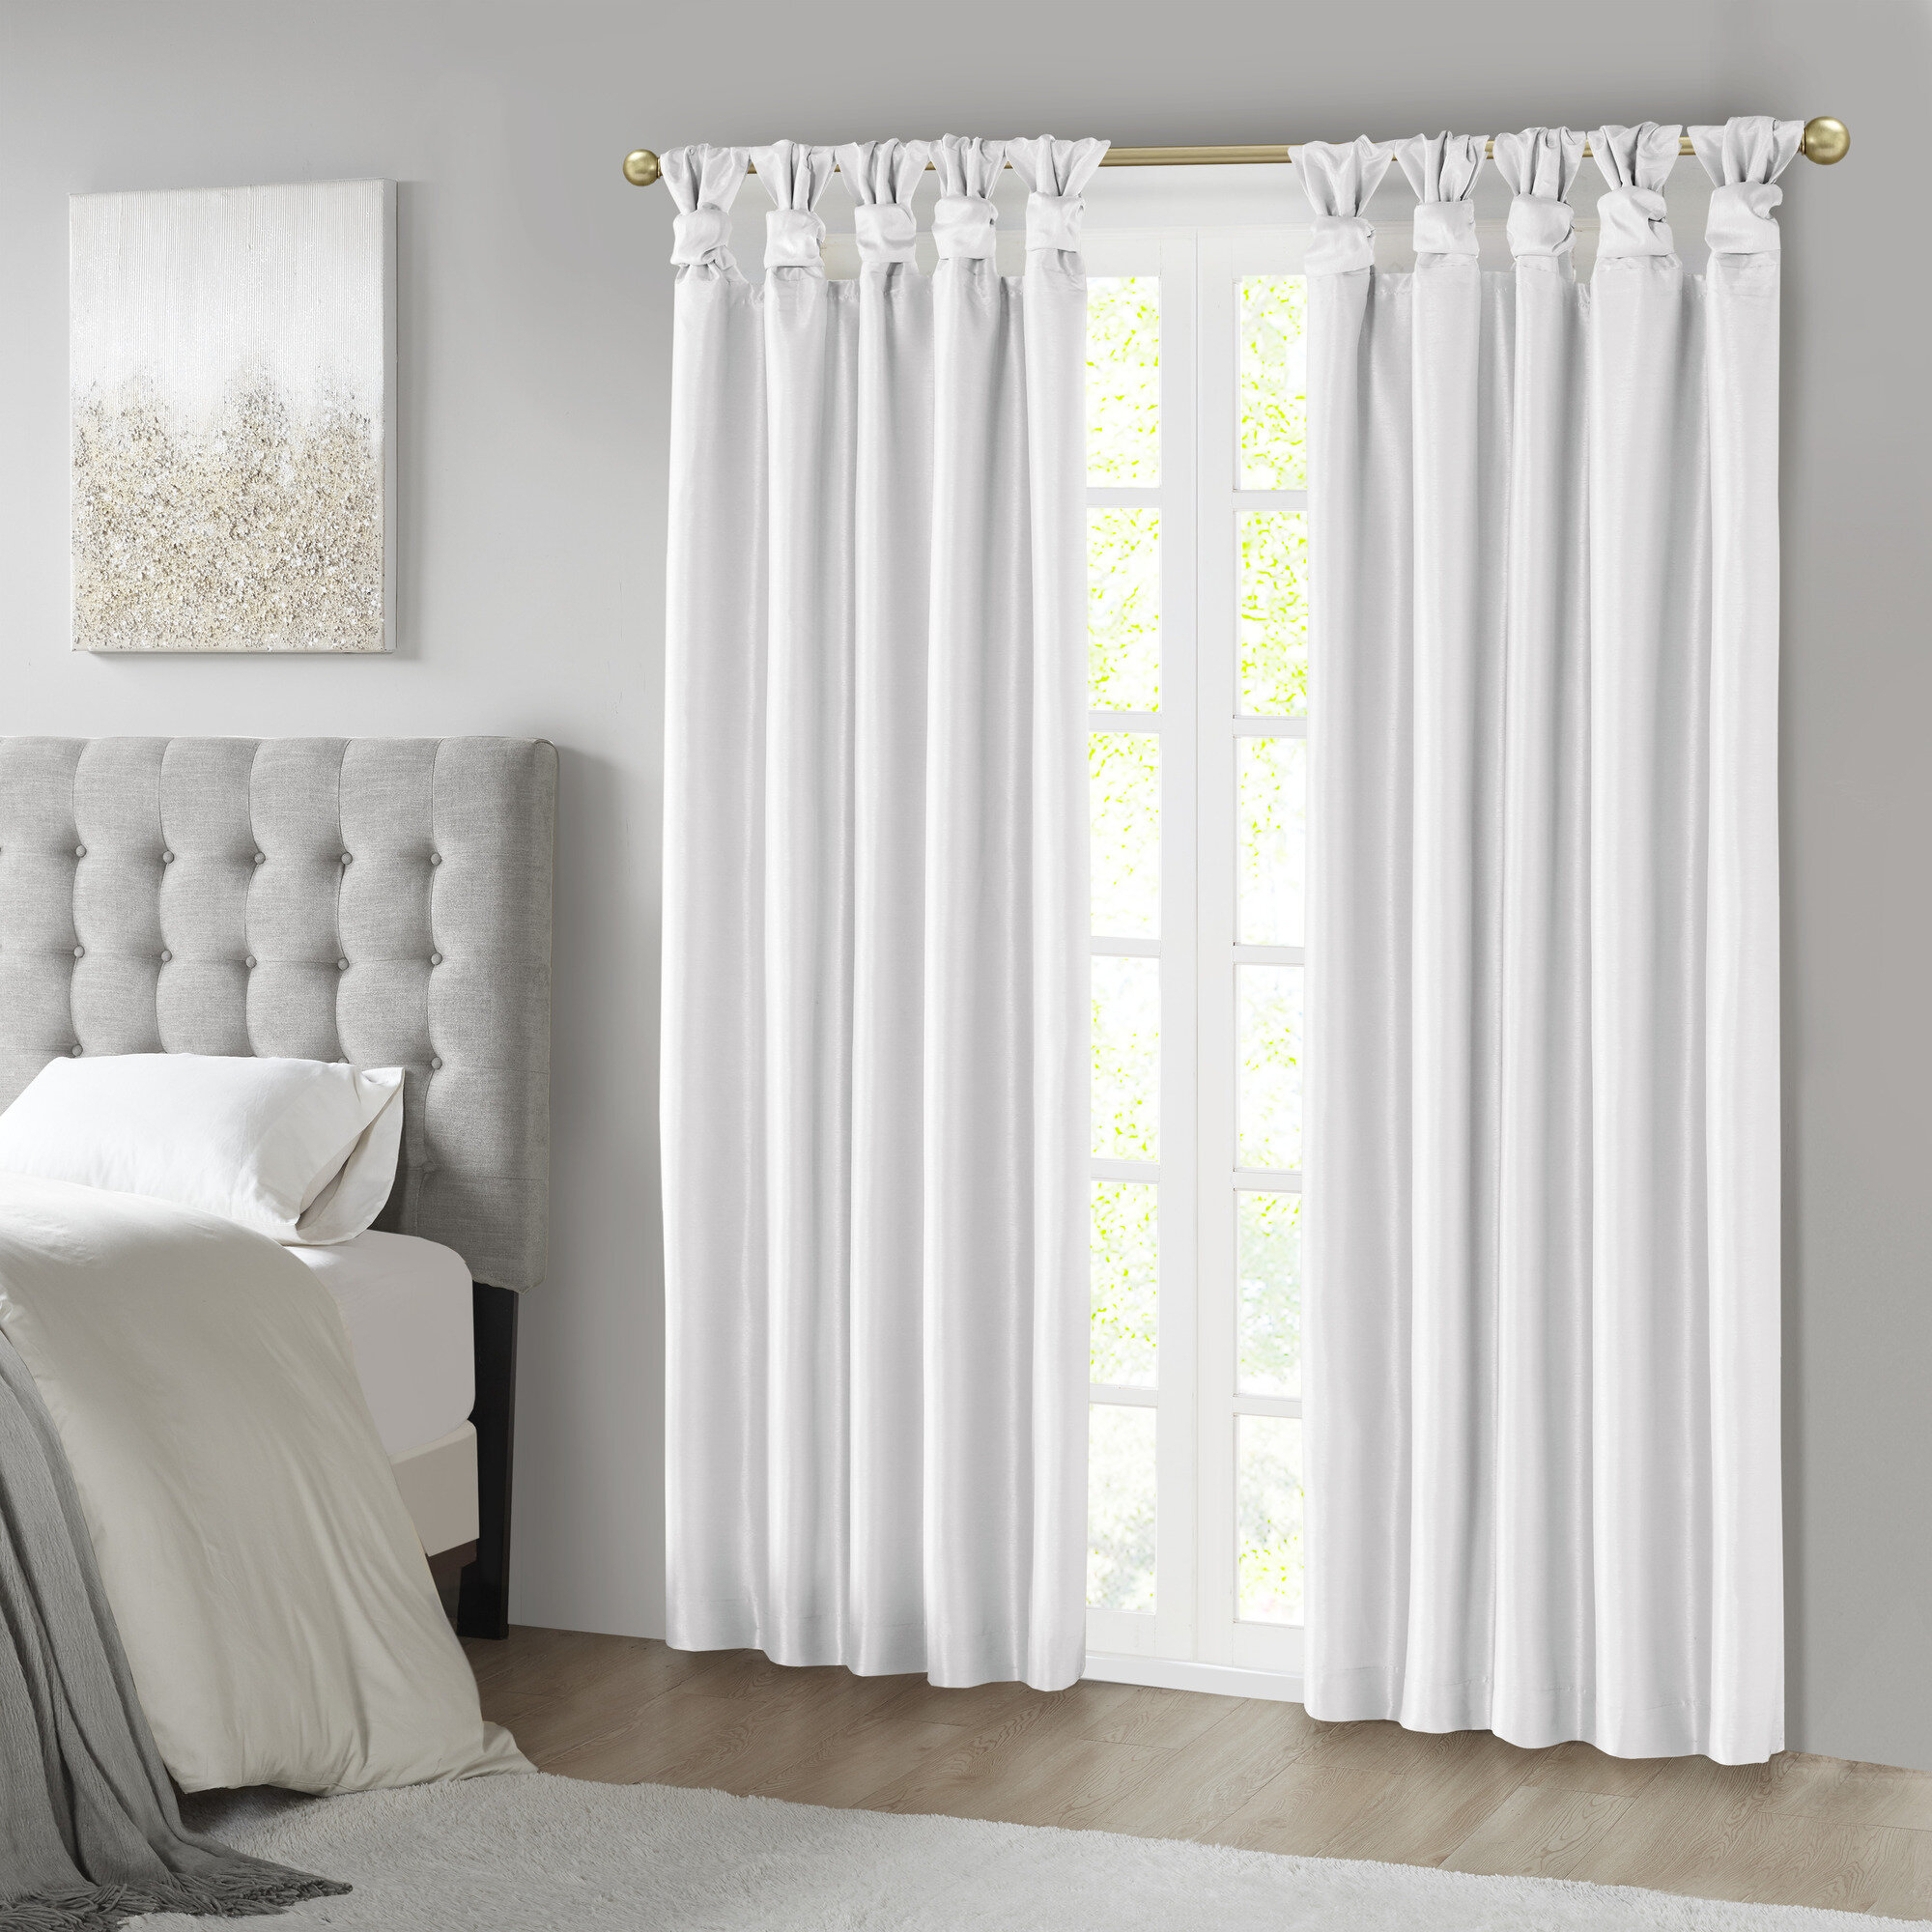 Campbelltown Solid Color Blackout Tab Top Single Curtain Panel Throughout Knotted Tab Top Window Curtain Panel Pairs (View 16 of 20)